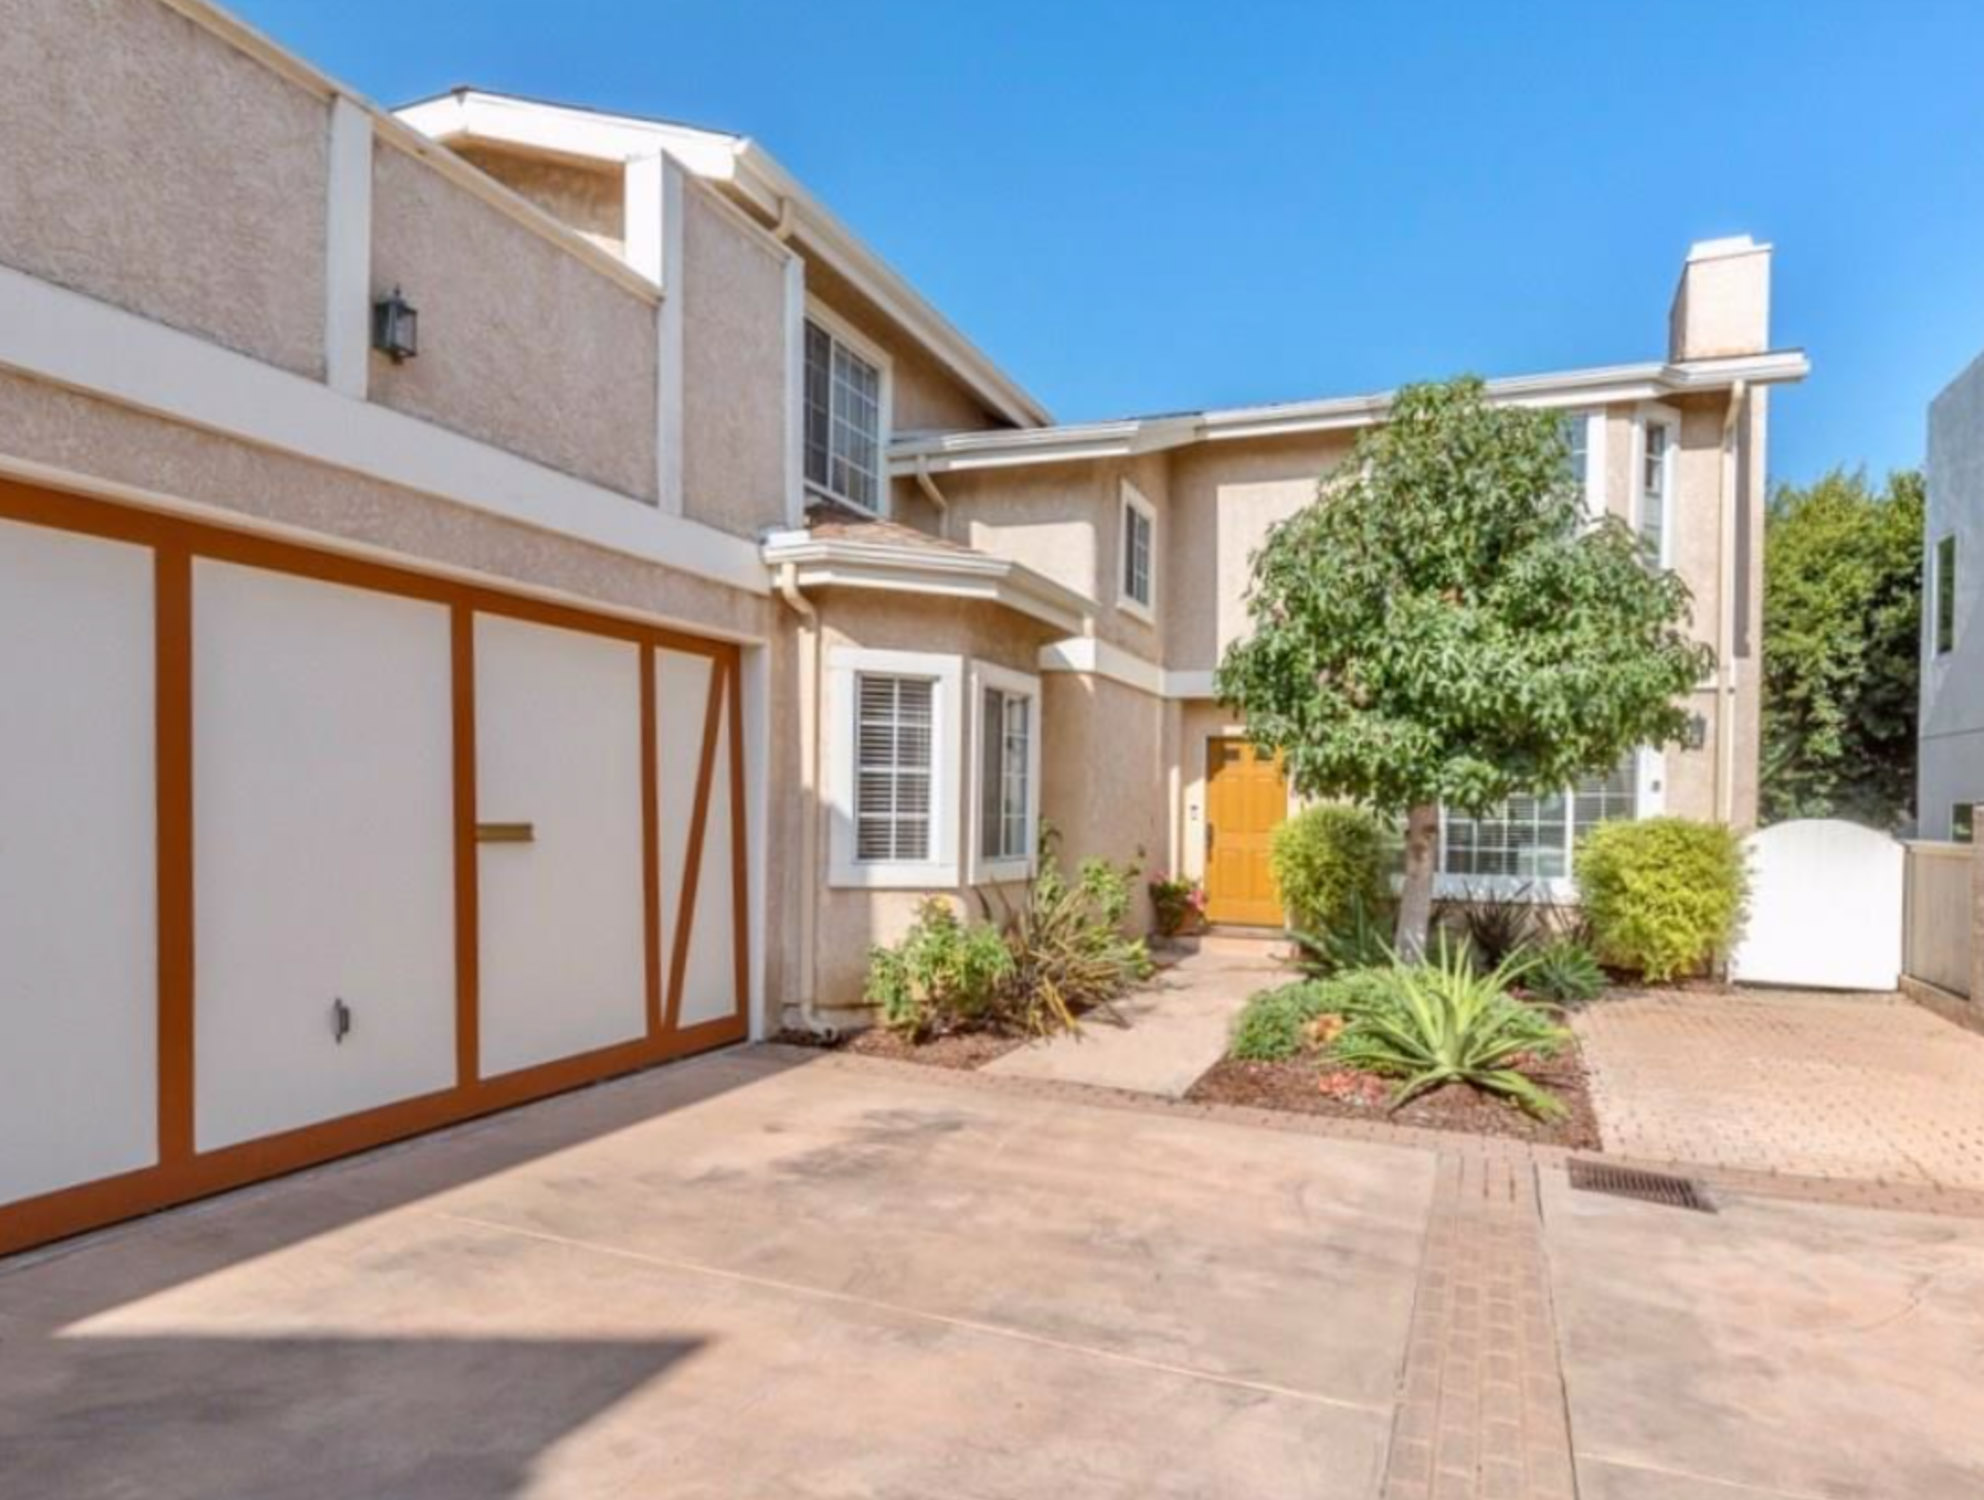 1931 Gates Avenue - REDONDO BEACH